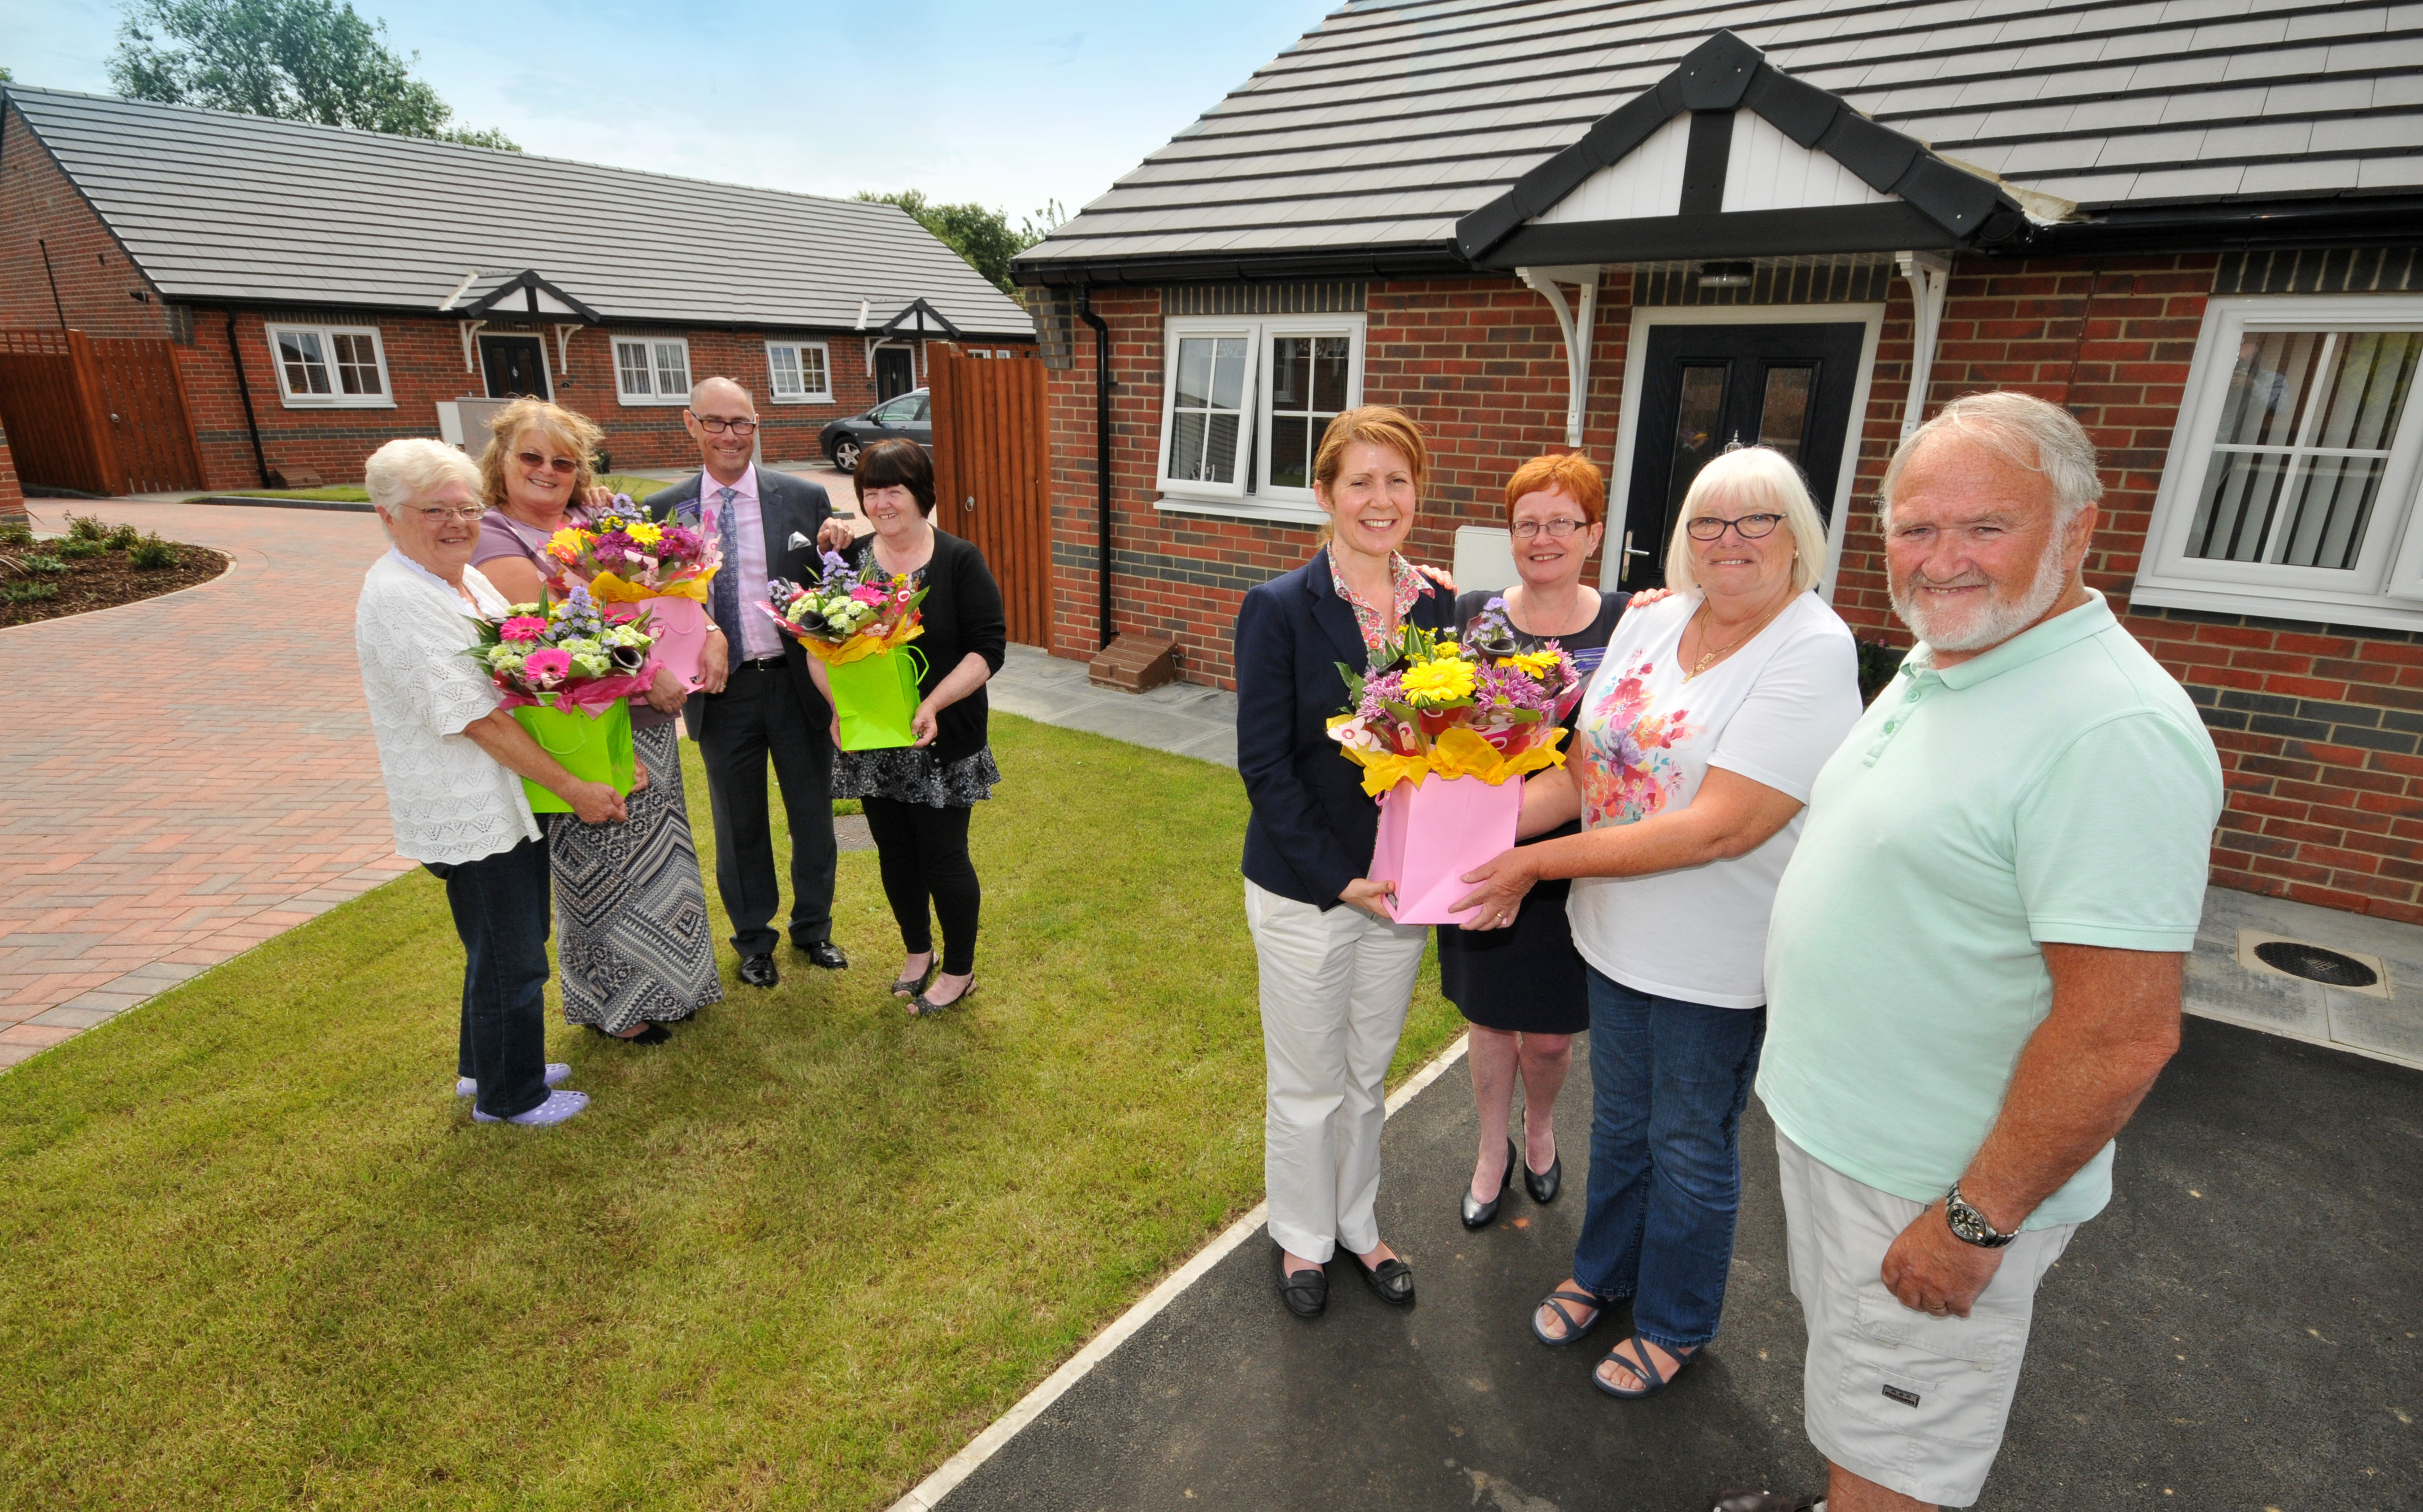 £6m investment in new homes - Railway Housing Association